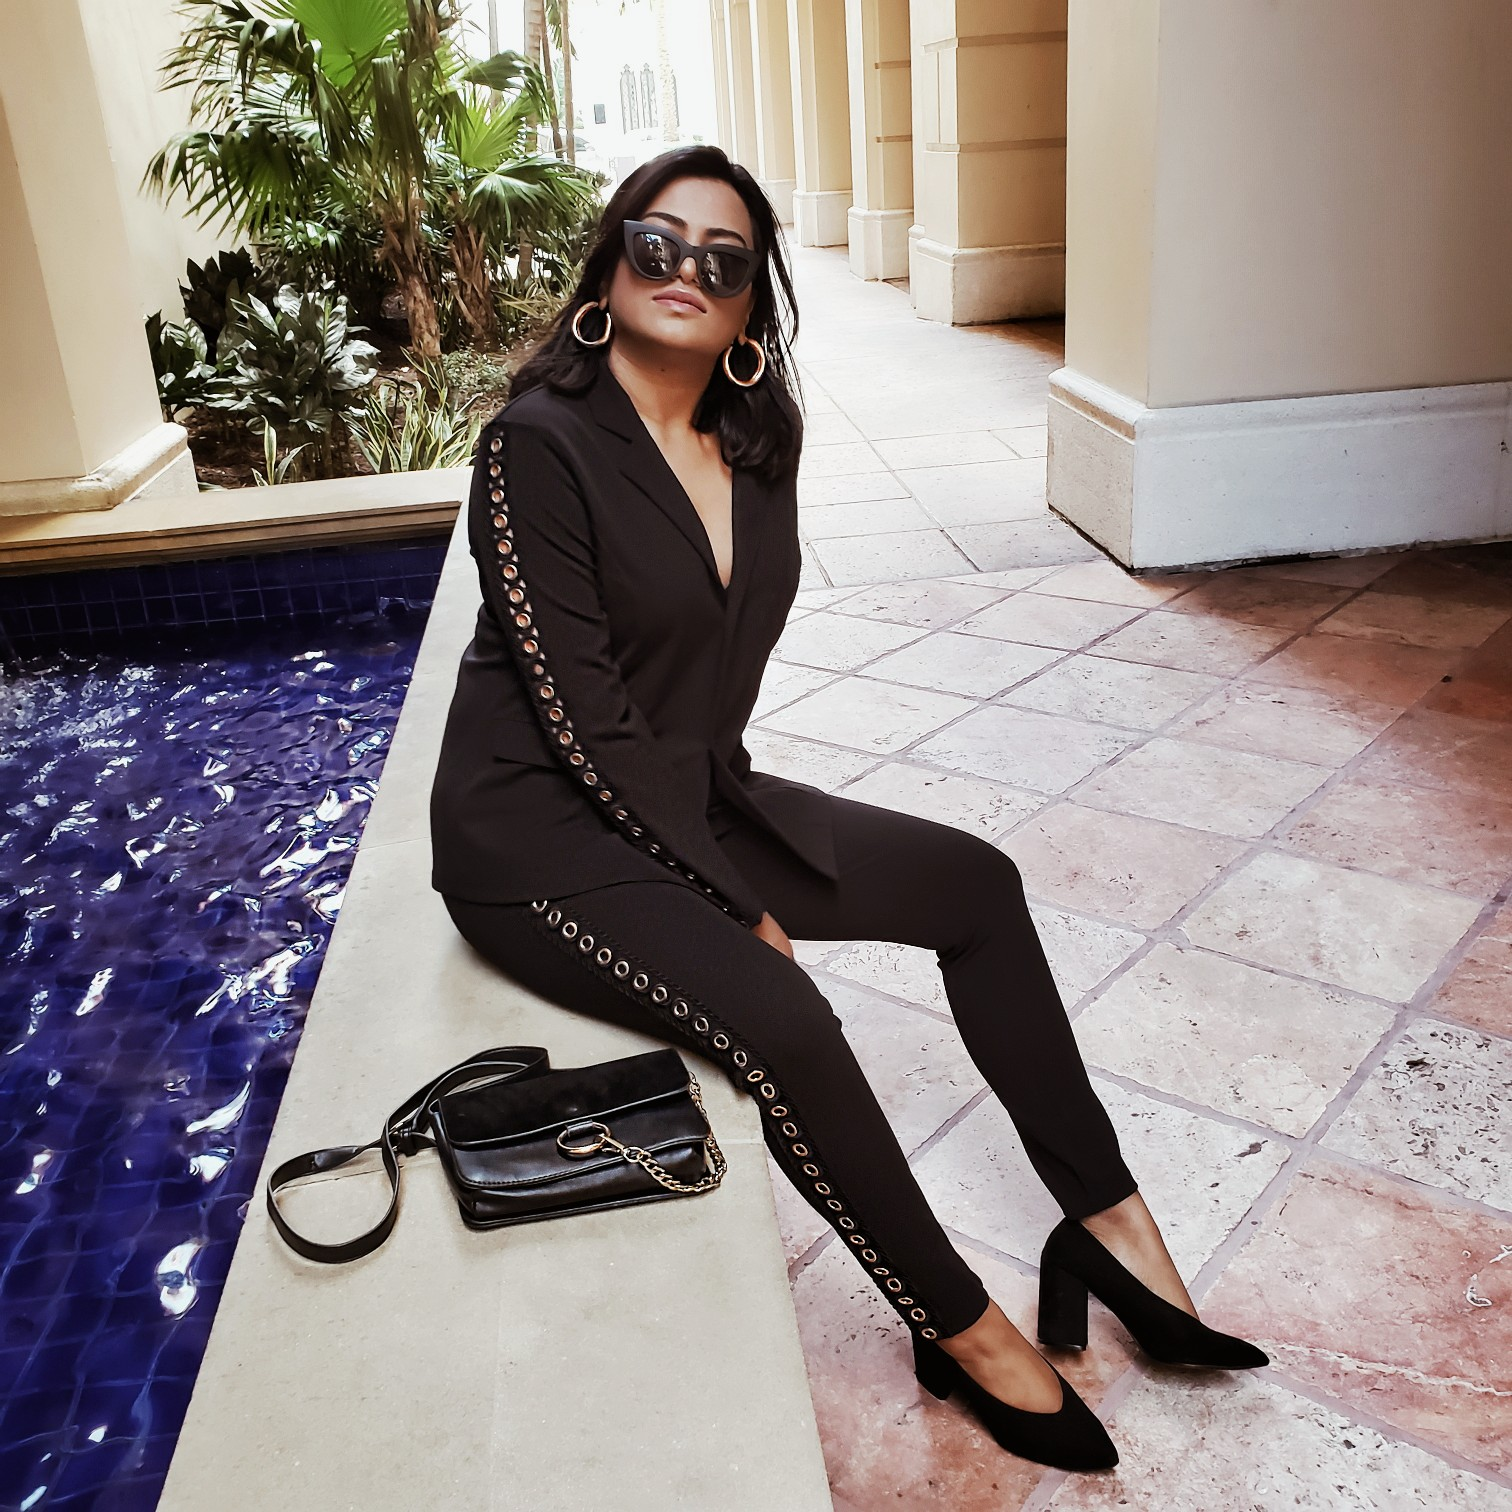 Afroza Khan Miami Influencer Black Chic Pant Suit Miami Street Style